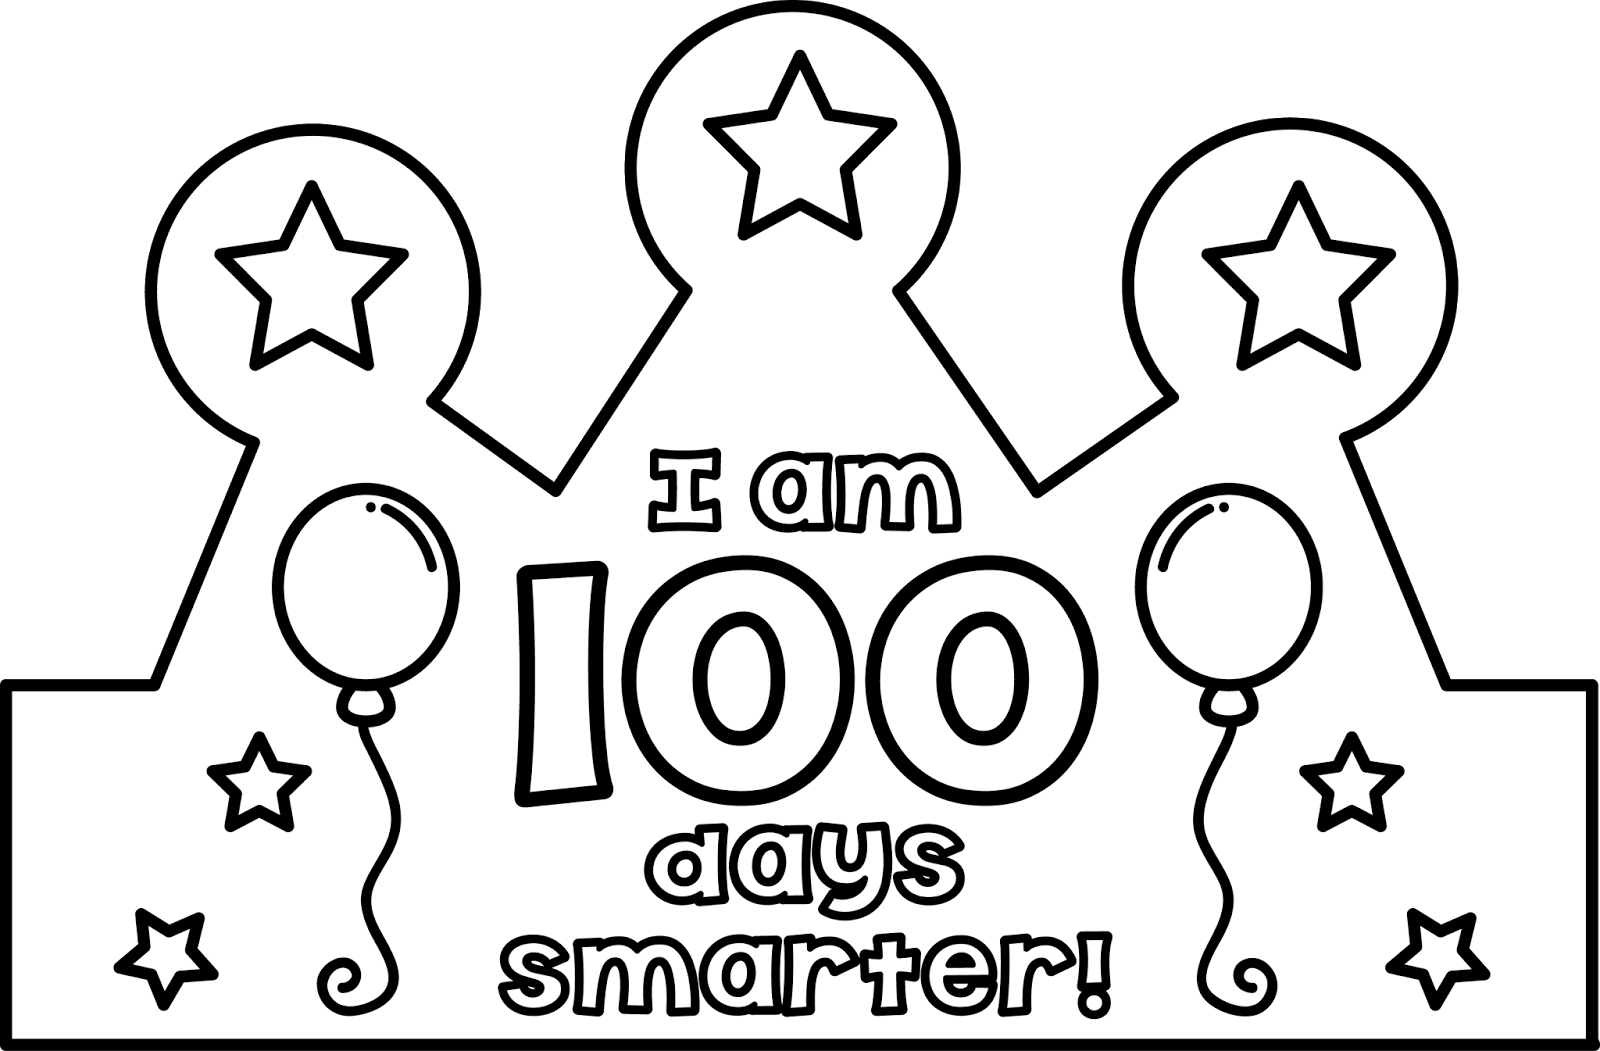 math worksheet : 100s day clipart  clipart kid : 100 Day Math Worksheets